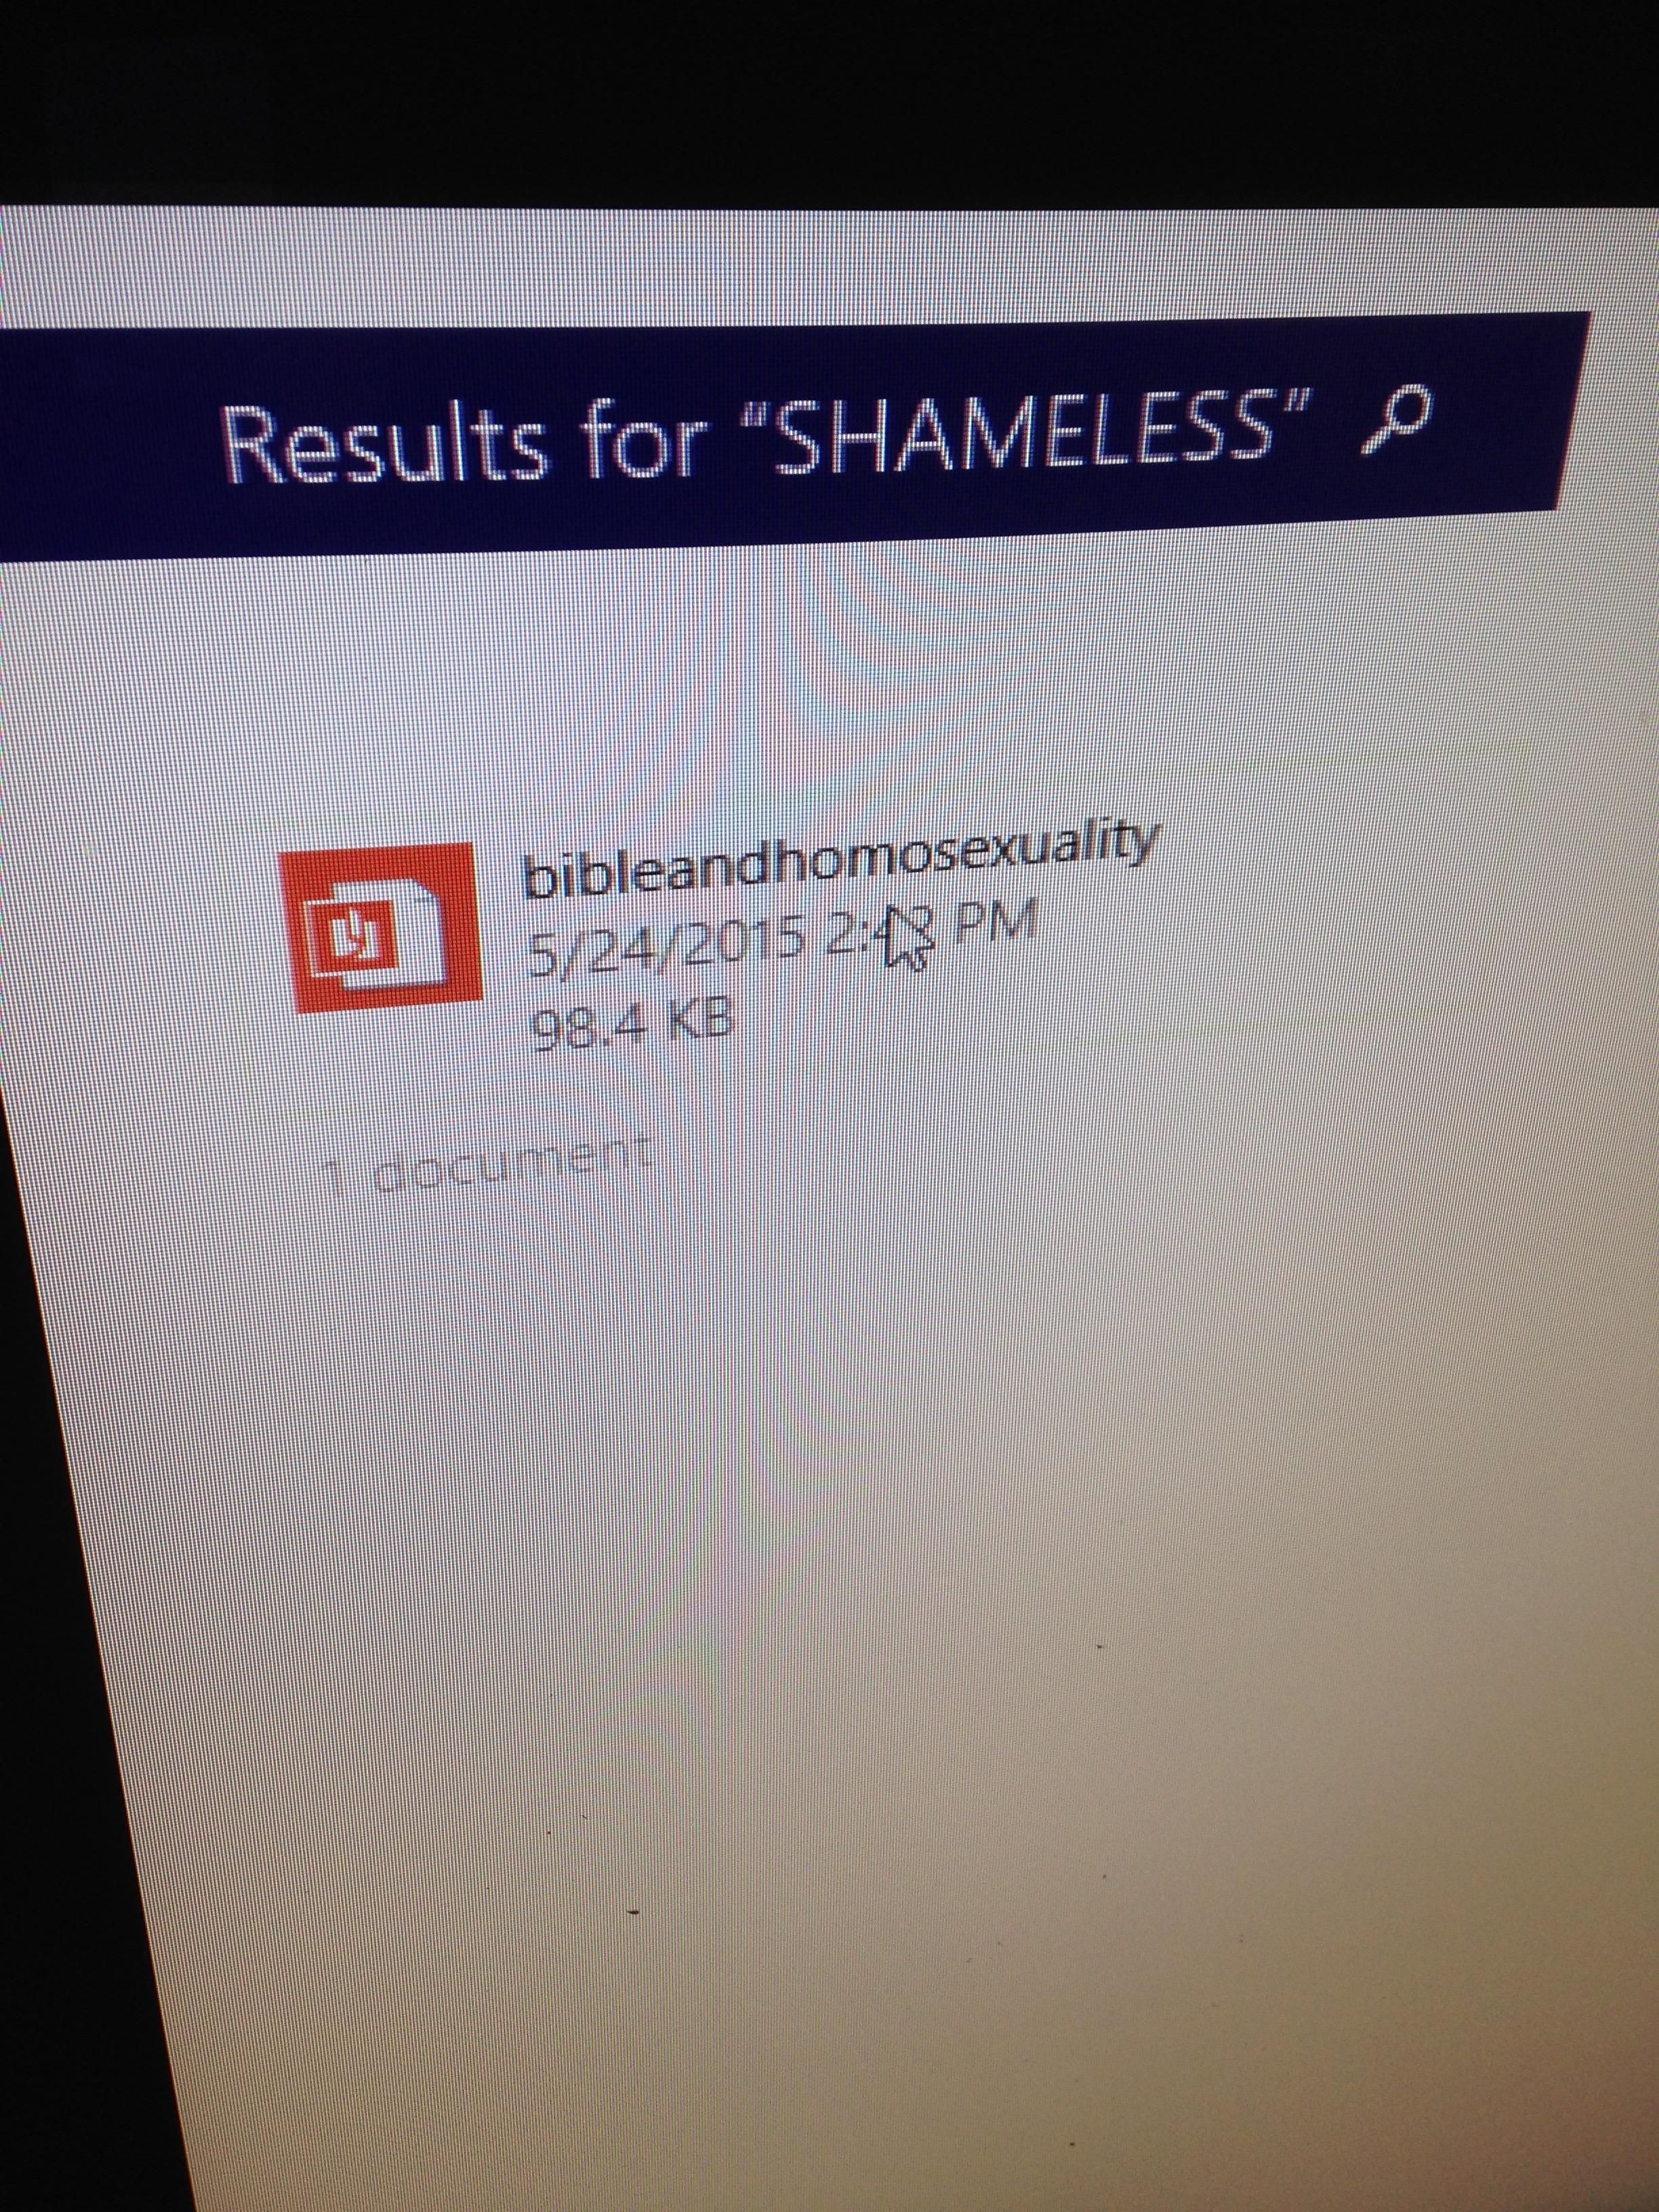 we wanted to watch shameless on my friends computer http://ift.tt/2lzYLKX